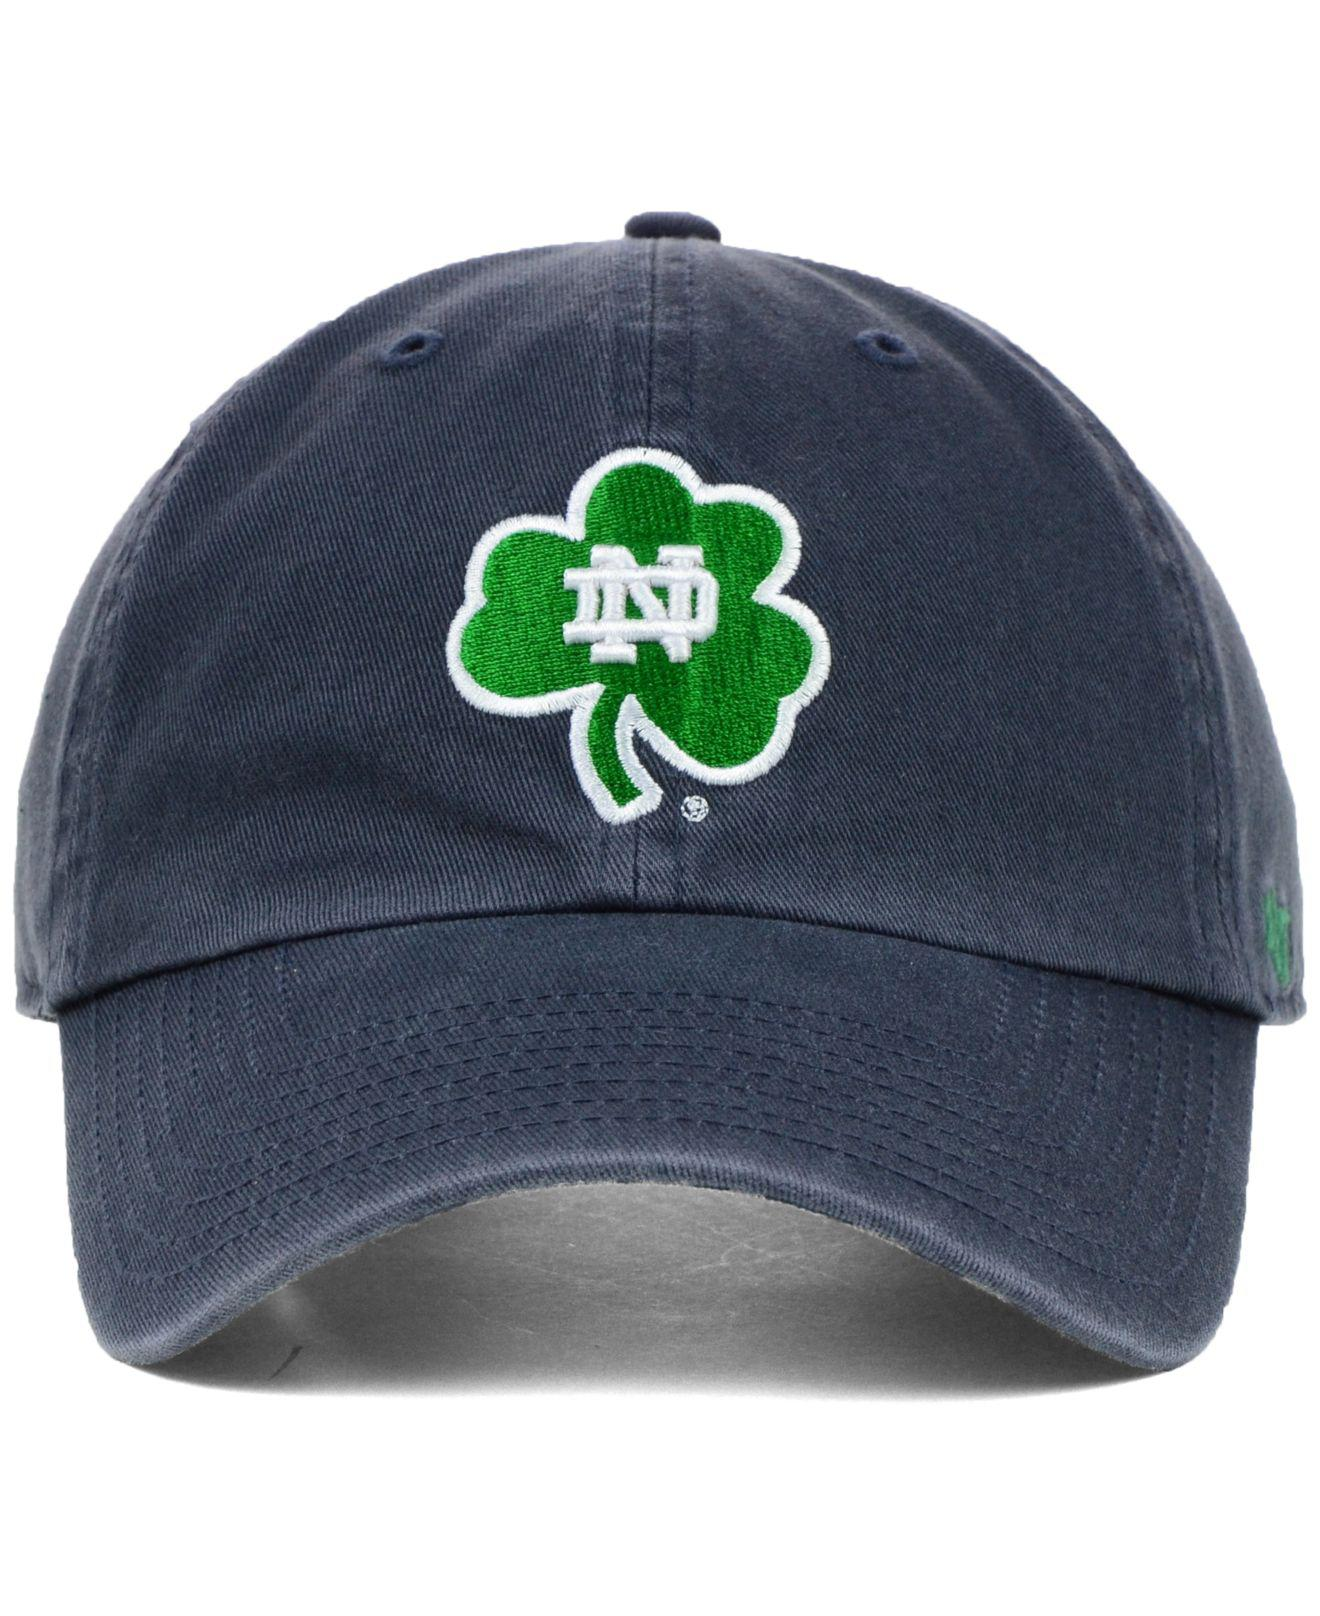 d583559e8832c ... lyst 47 brand notre dame fighting irish clean up cap in blue for men  netherlands 47 brand notre dame fighting irish caprock canyon logo flex hat  green ...